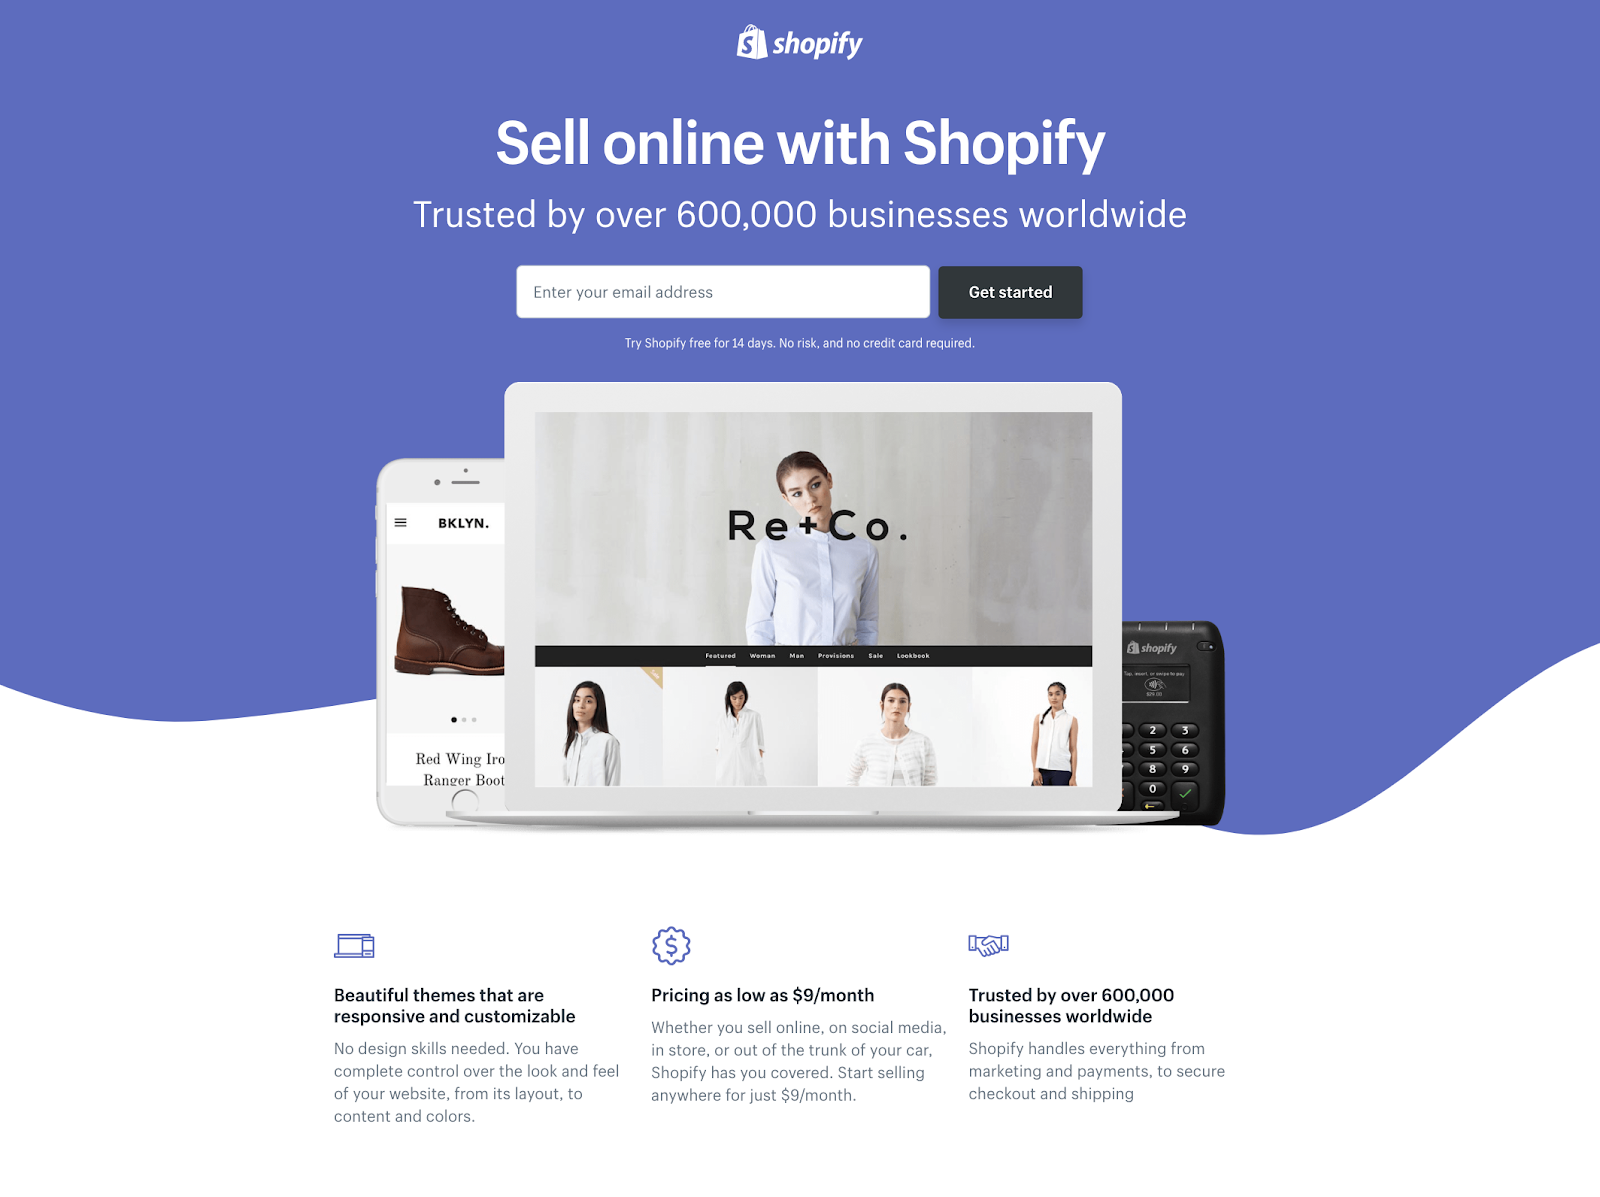 shopify screen